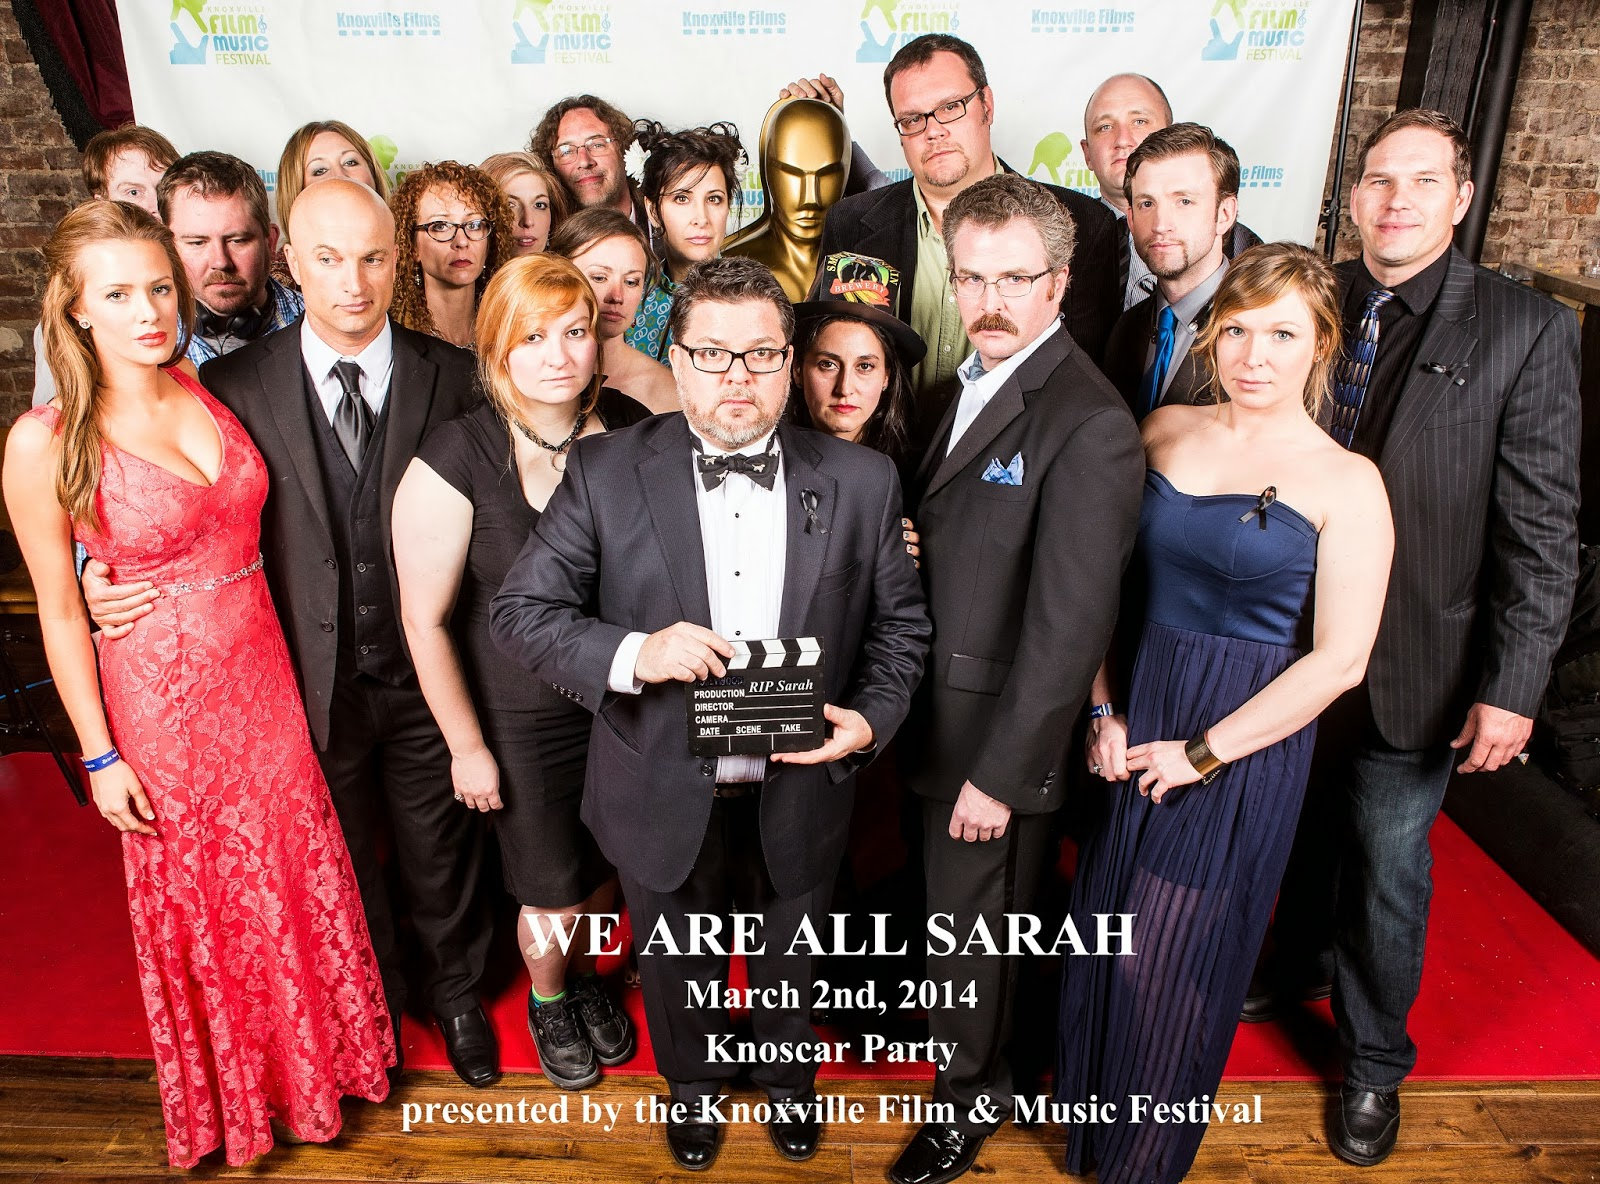 RIP Sarah #ripsarah We are all Sarah #WeAreAllSarah, 2014 Knoscar Party hosted by Knoxville Films, Knoxville Film and Music Festival